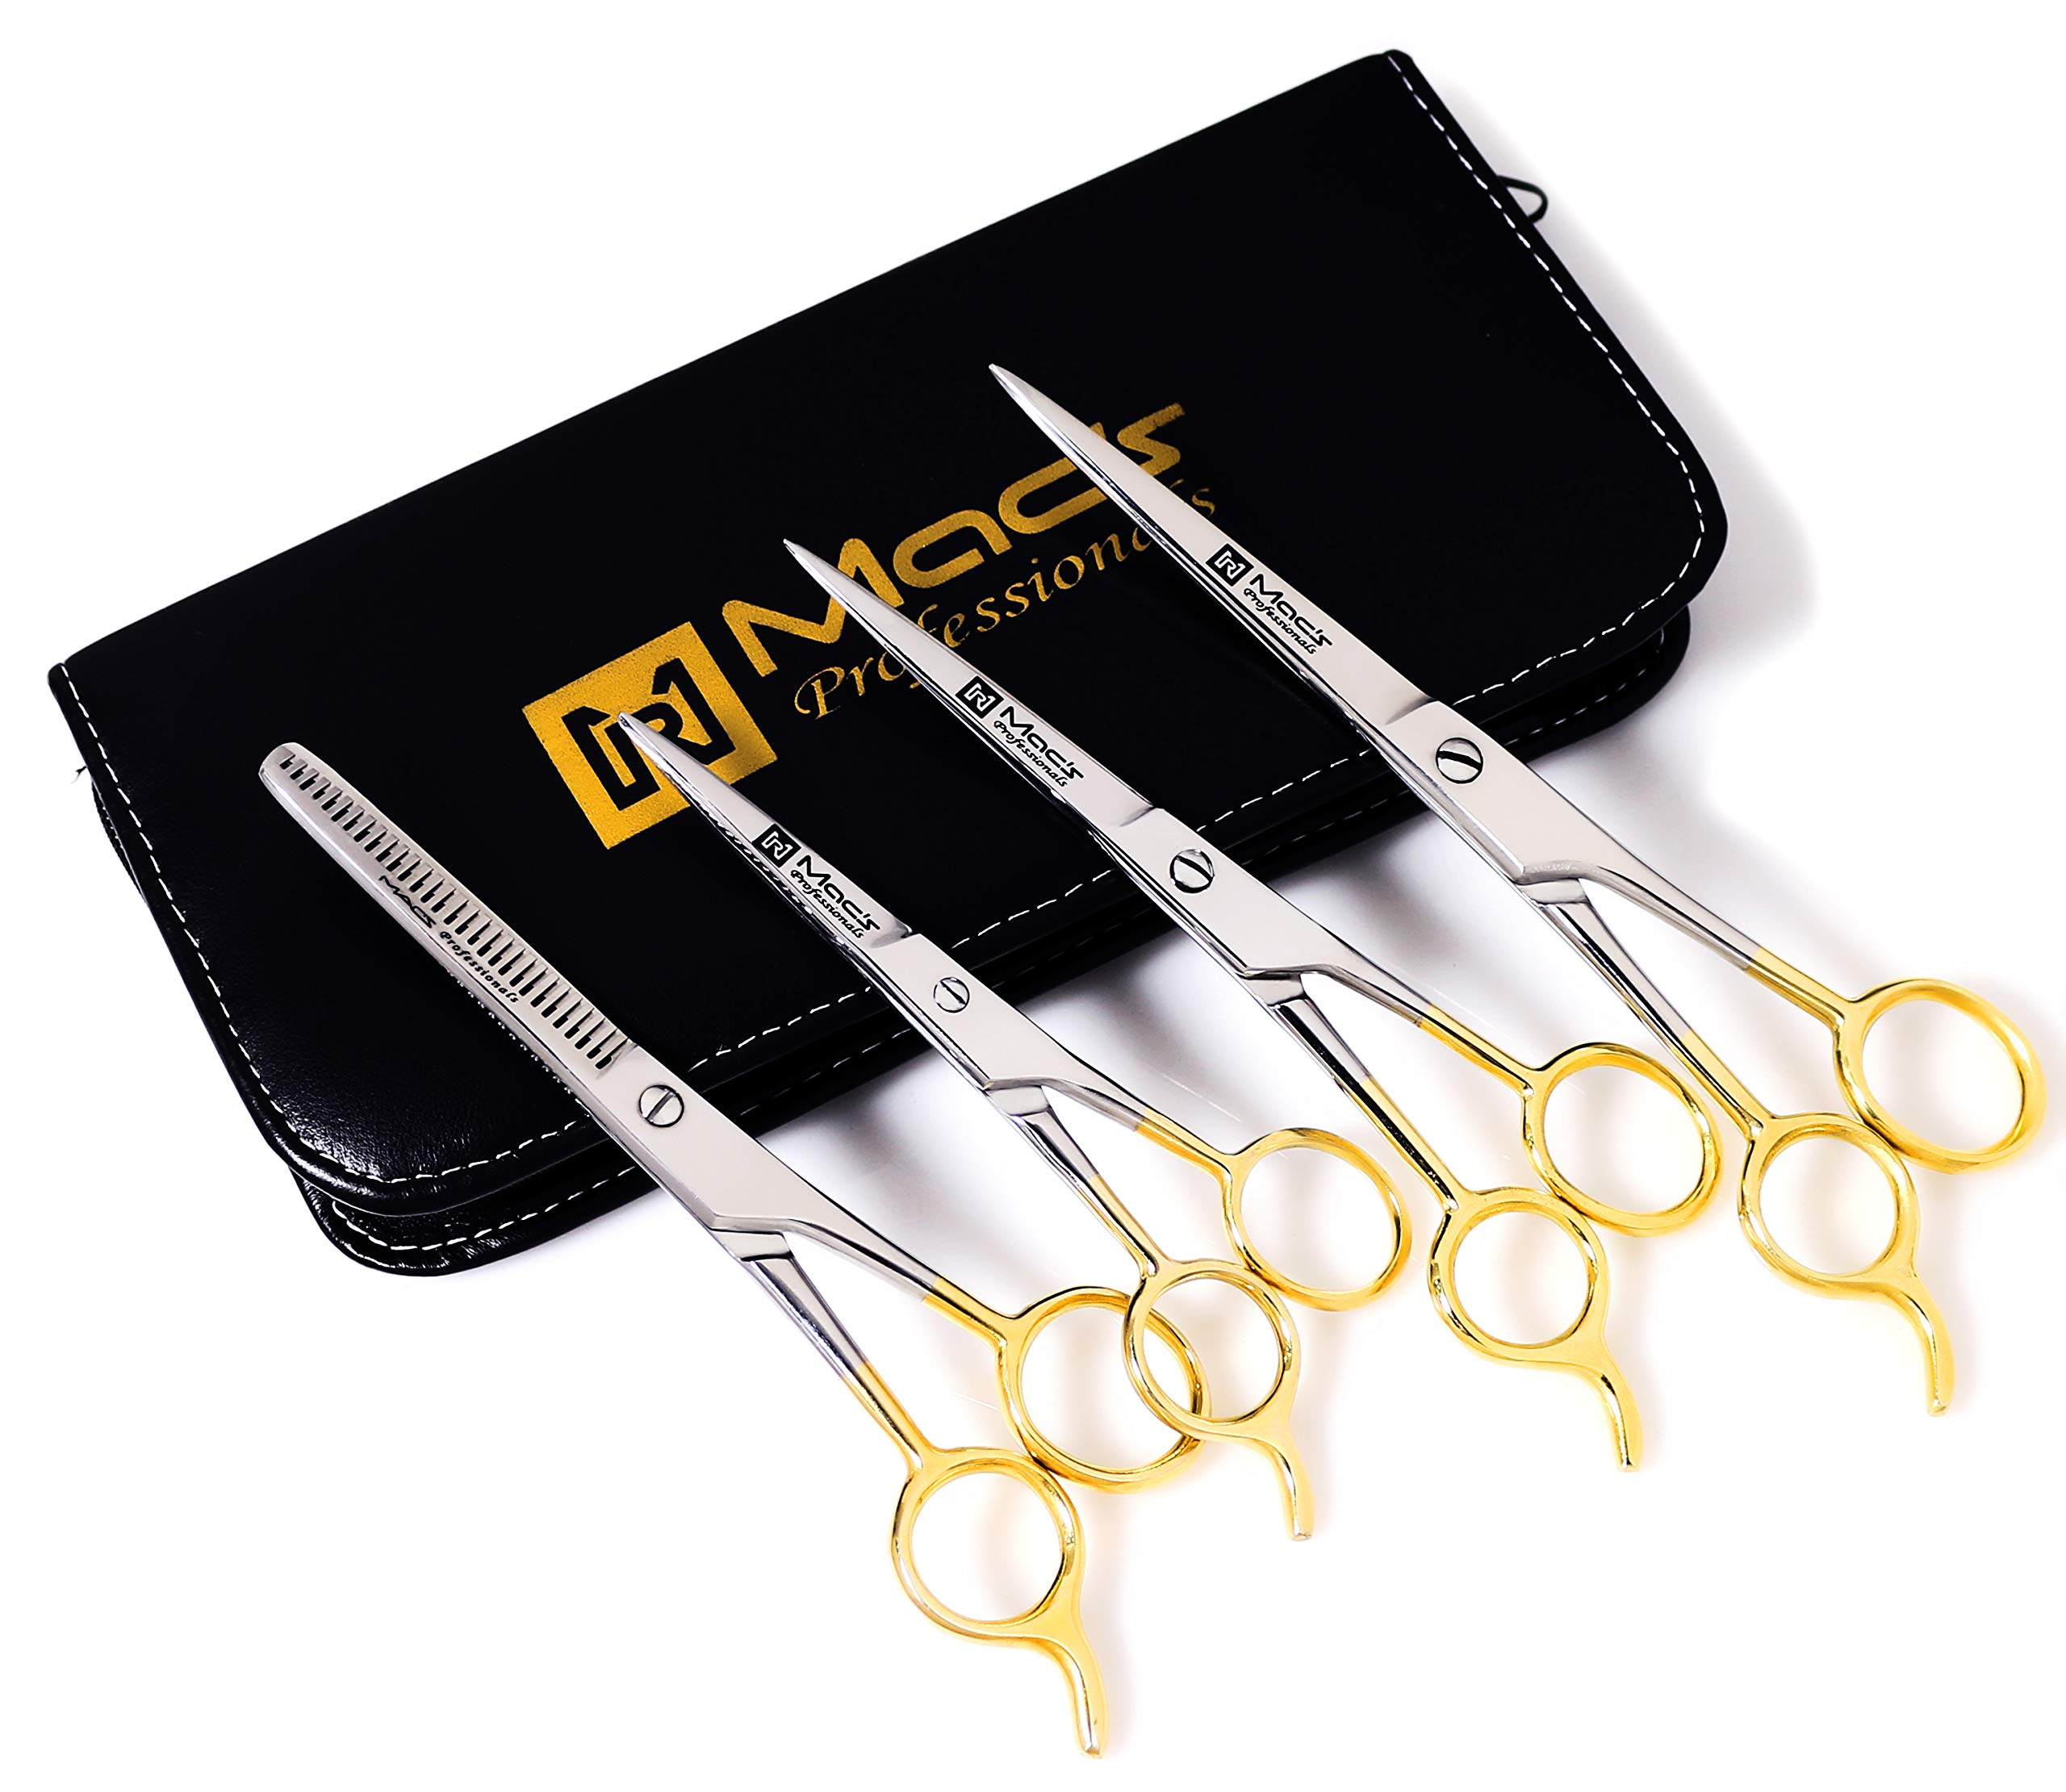 Macs Barber Scissor Hair Cutting Scissors Set Contain 4 Pcs Scissors With Half Gold Plated 5.5'' + 6.5'' +7.5'' With 6.25'' Texturizing /Thinning Shears Set Made Of High Grade Stainles Steel with Free Black Leather Case-15001 by Macs Razor Products